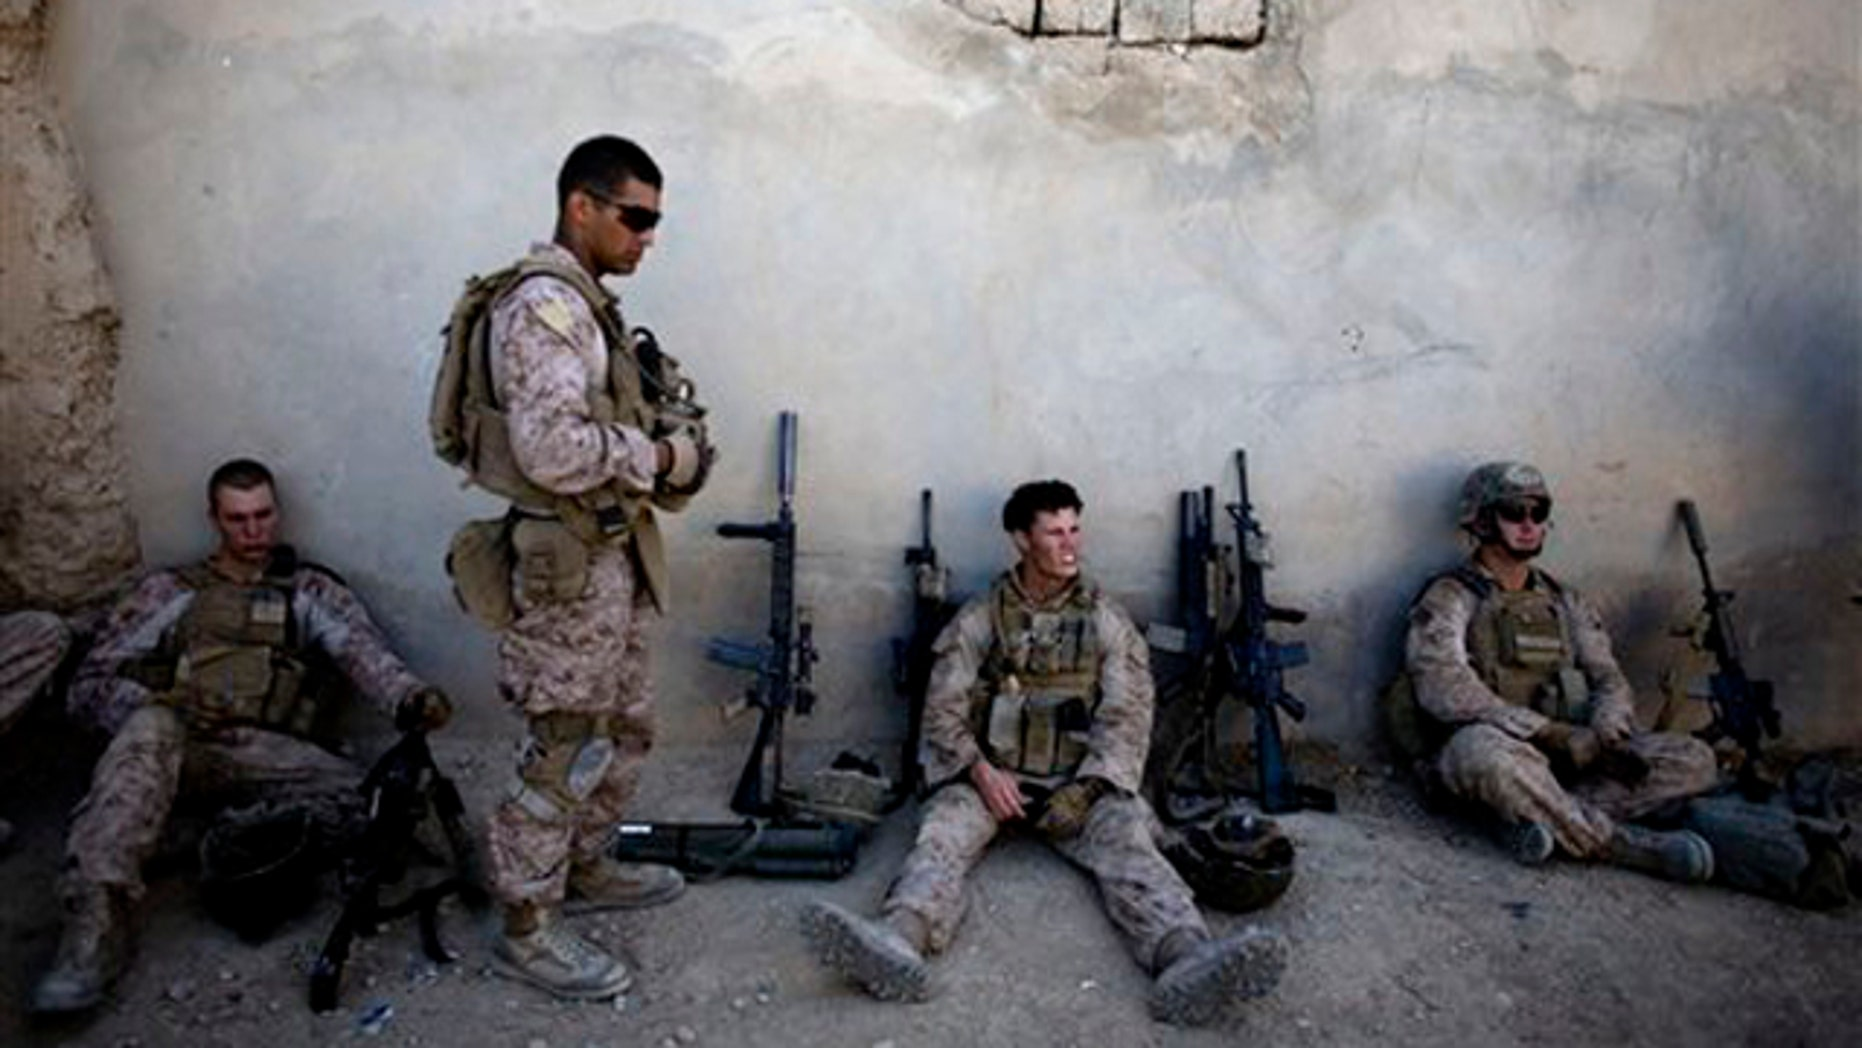 Marines with India company, 3rd Battalion 5th Marines, First Marine Division, take a break during a patrol in Sangin, south of Kabul, Afghanistan on Nov. 3. (AP Photo)